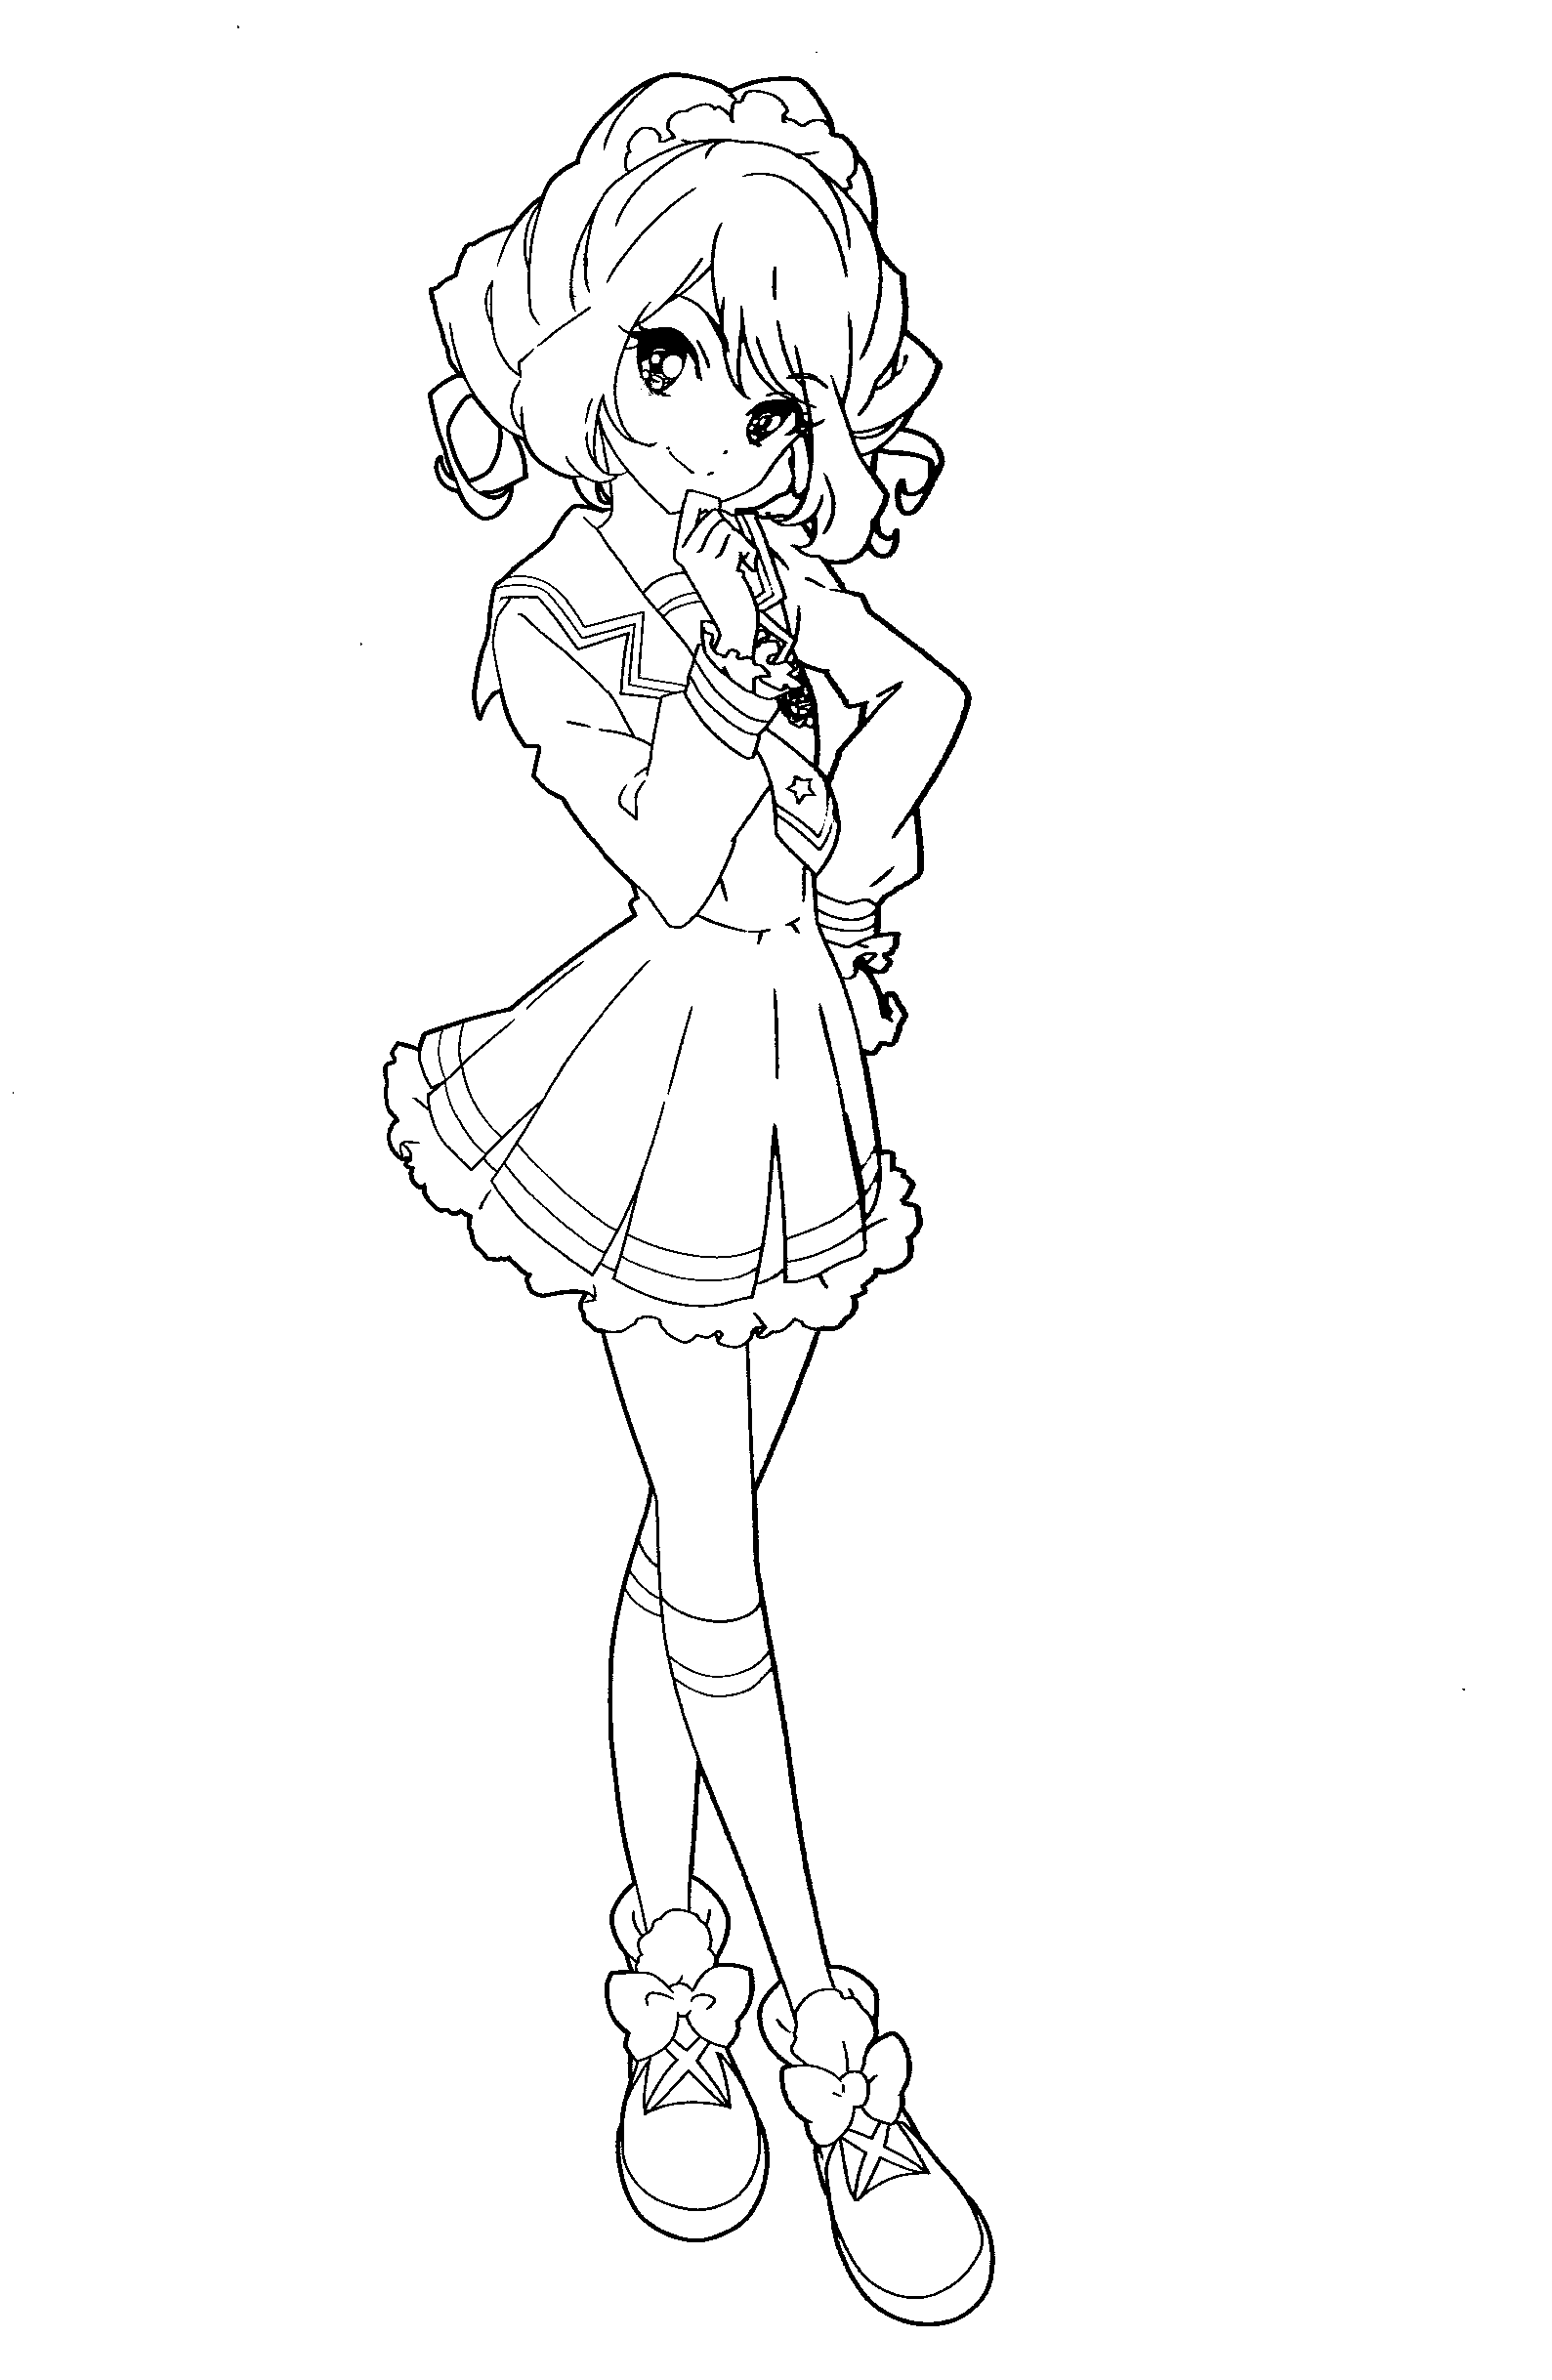 Aikatsu Stars Coloring Pages by Atem3337 on DeviantArt